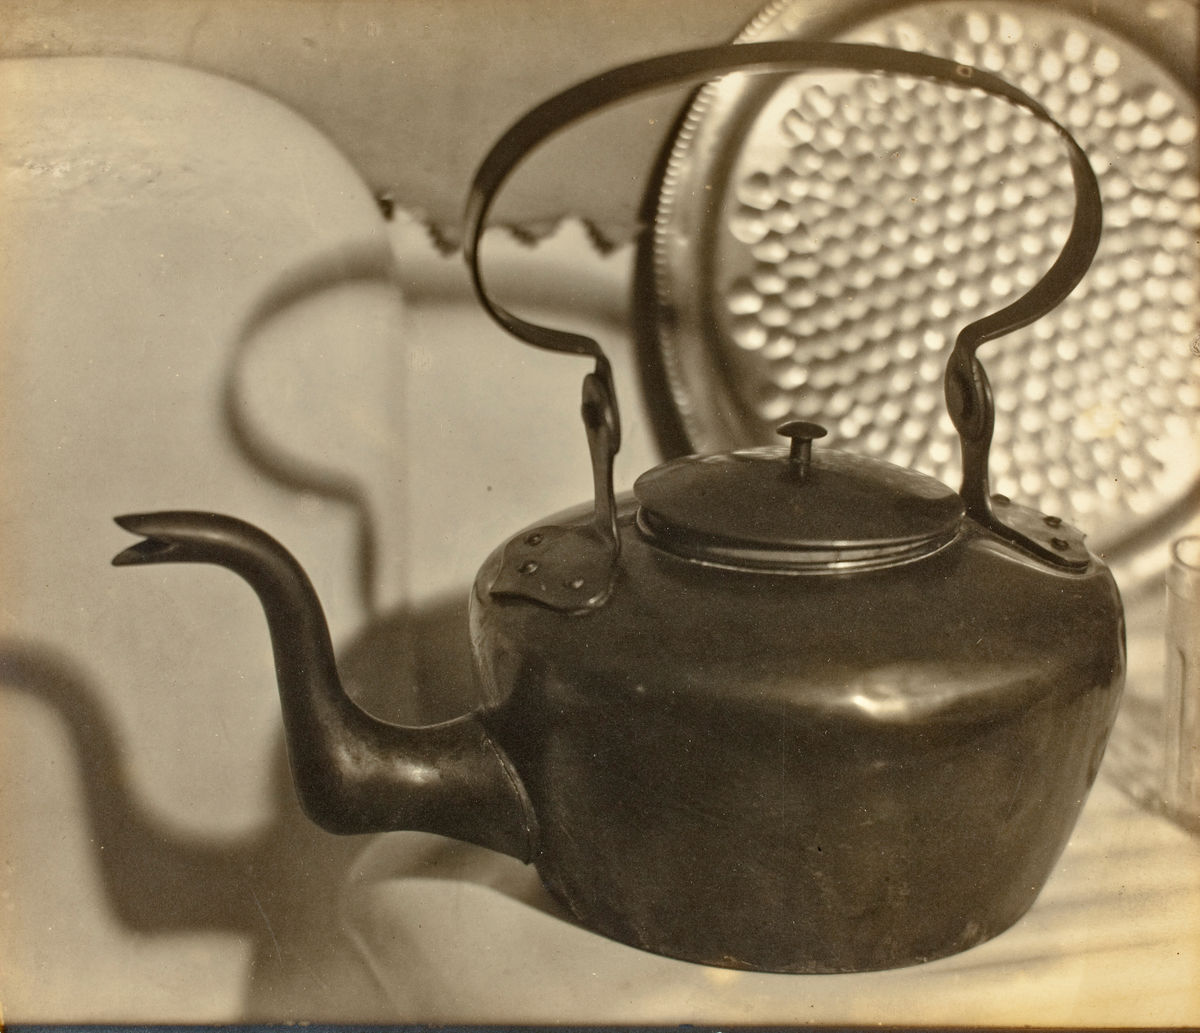 Margaret Watkins (Canadian, 1884–1969), Untitled [Kitchen still life], ca. 1919–20. Gelatin silver print, 16 x 18.7 cm. Los Angeles County Museum of Art, The Marjorie and Leonard Vernon Collection, gift of the Annenberg Foundation, acquired from Carol Vernon and Robert Turbin. © The Estate of Margaret Watkins, courtesy of Robert Mann Gallery, New York; digital image © Museum Associates / LACMA